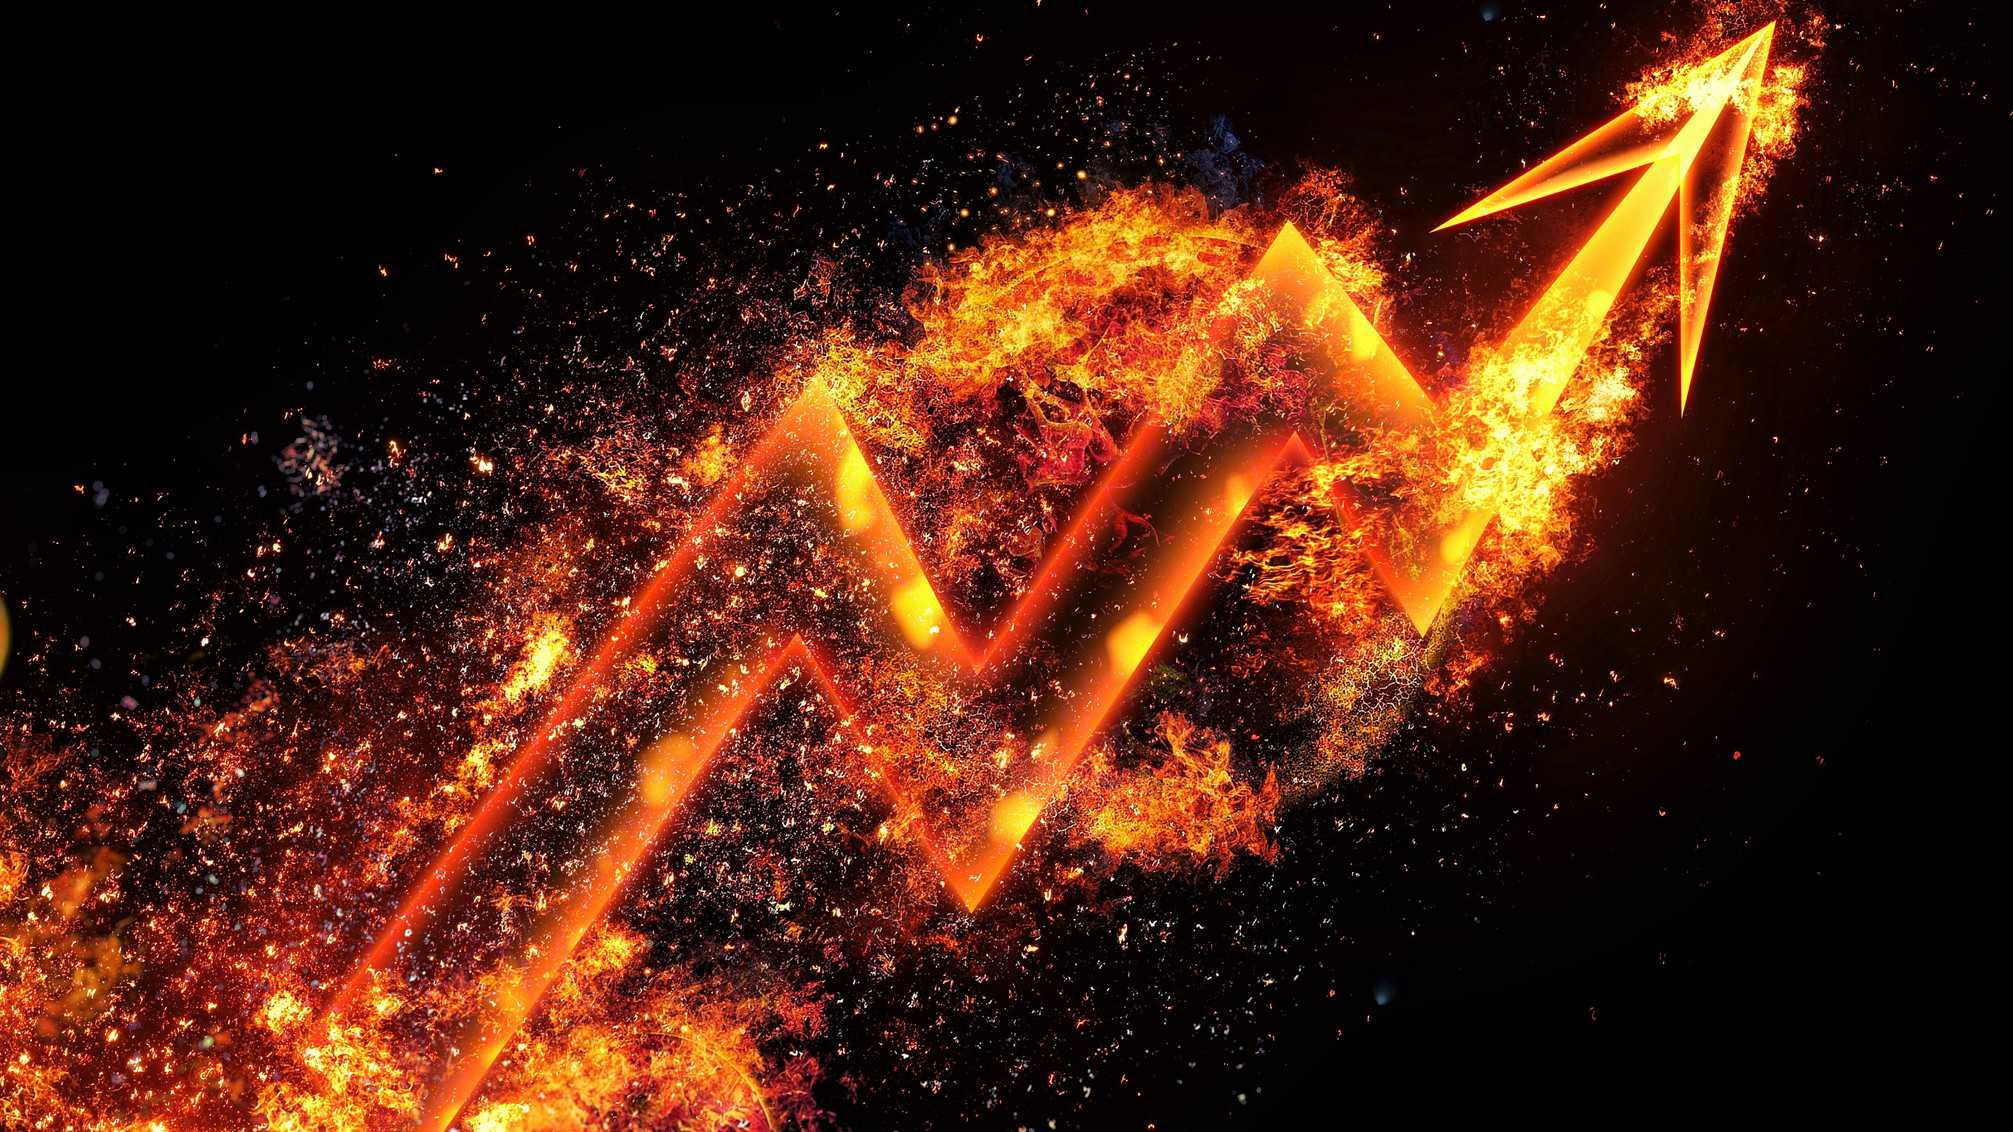 A graph ablaze with fire going up, indicating a fired up and surged share price